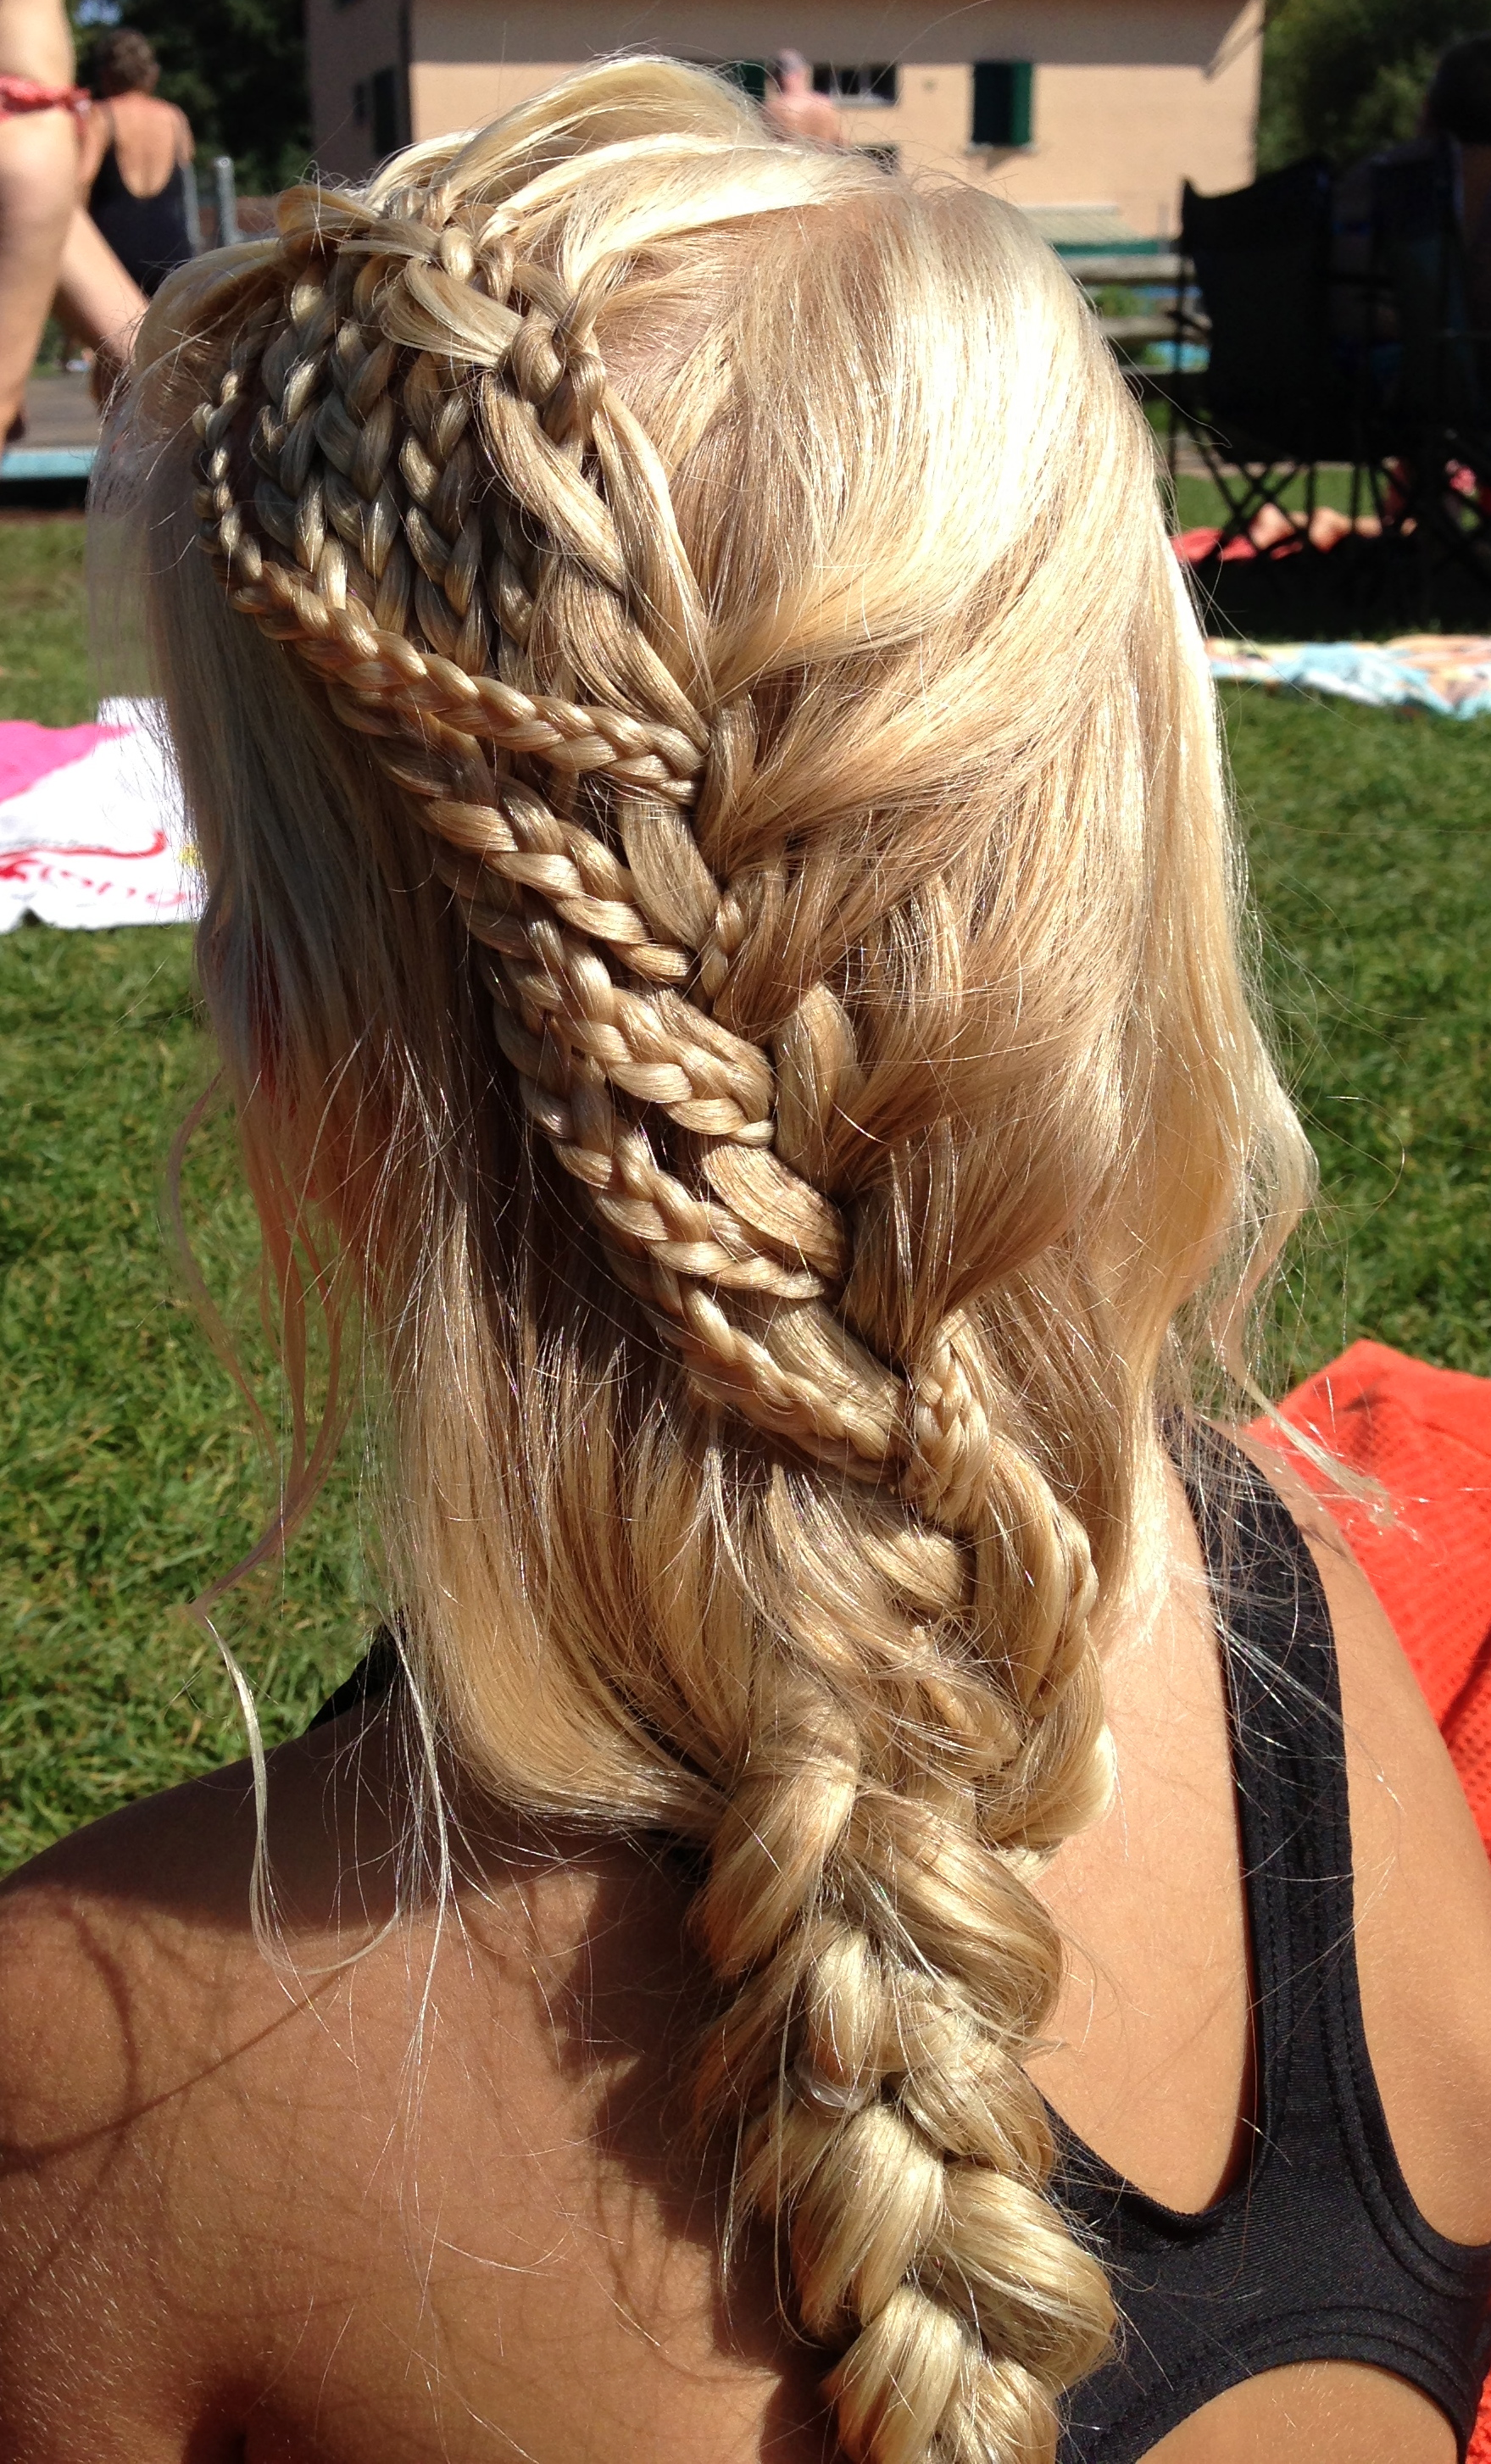 waterfall into little braids after swimming